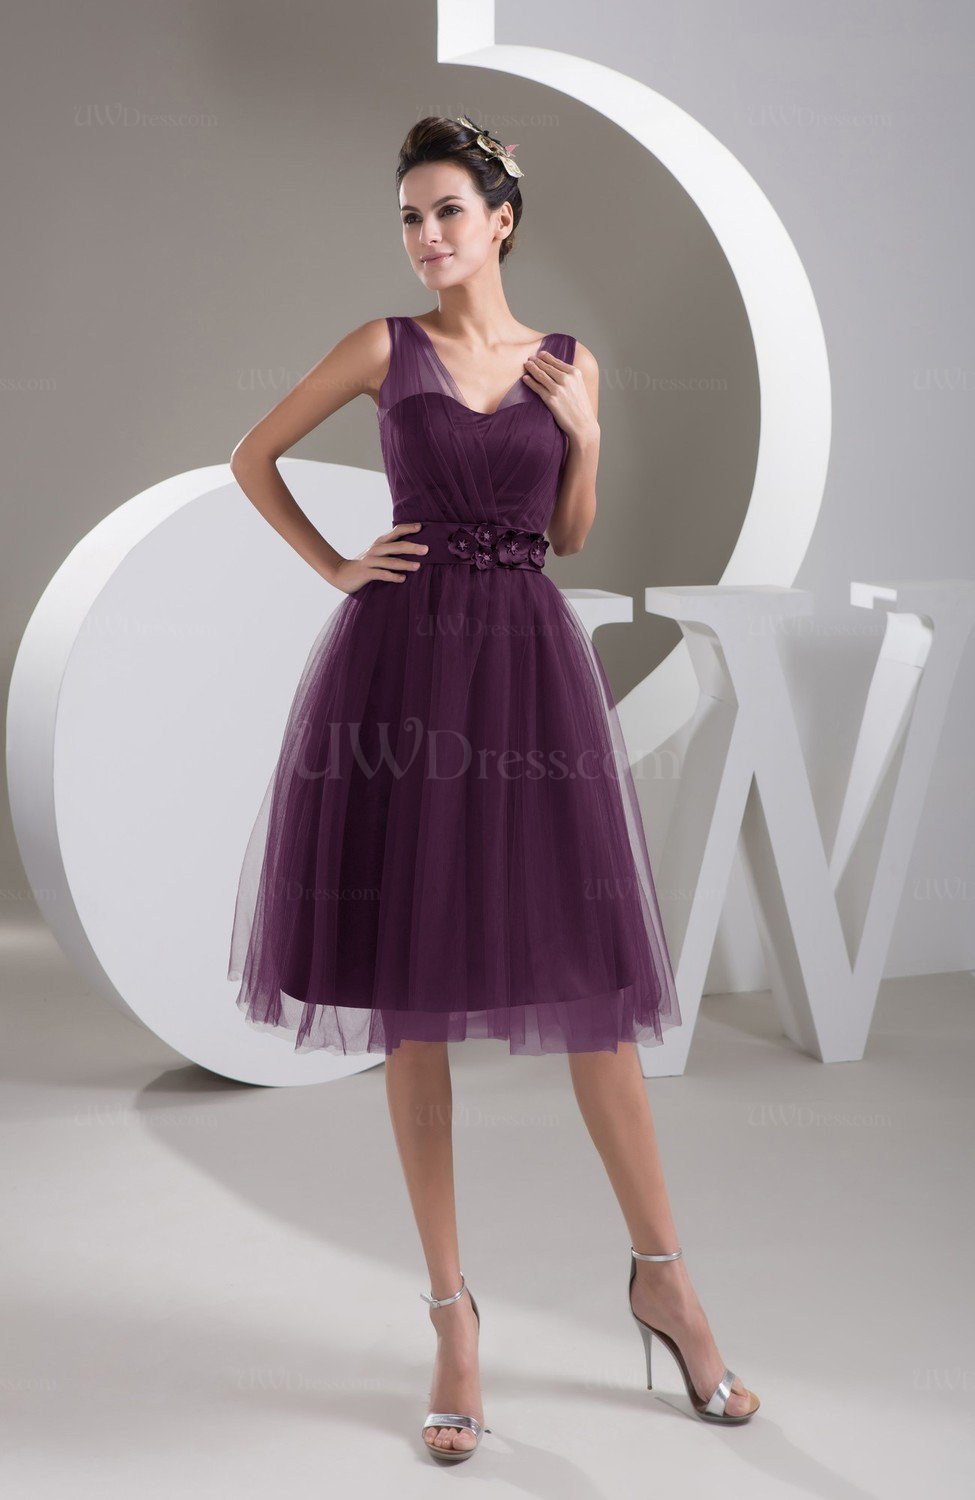 444d70223a7 Plum Inexpensive Bridesmaid Dress Short Sheer Knee Length Informal Elegant  (Style D14229)